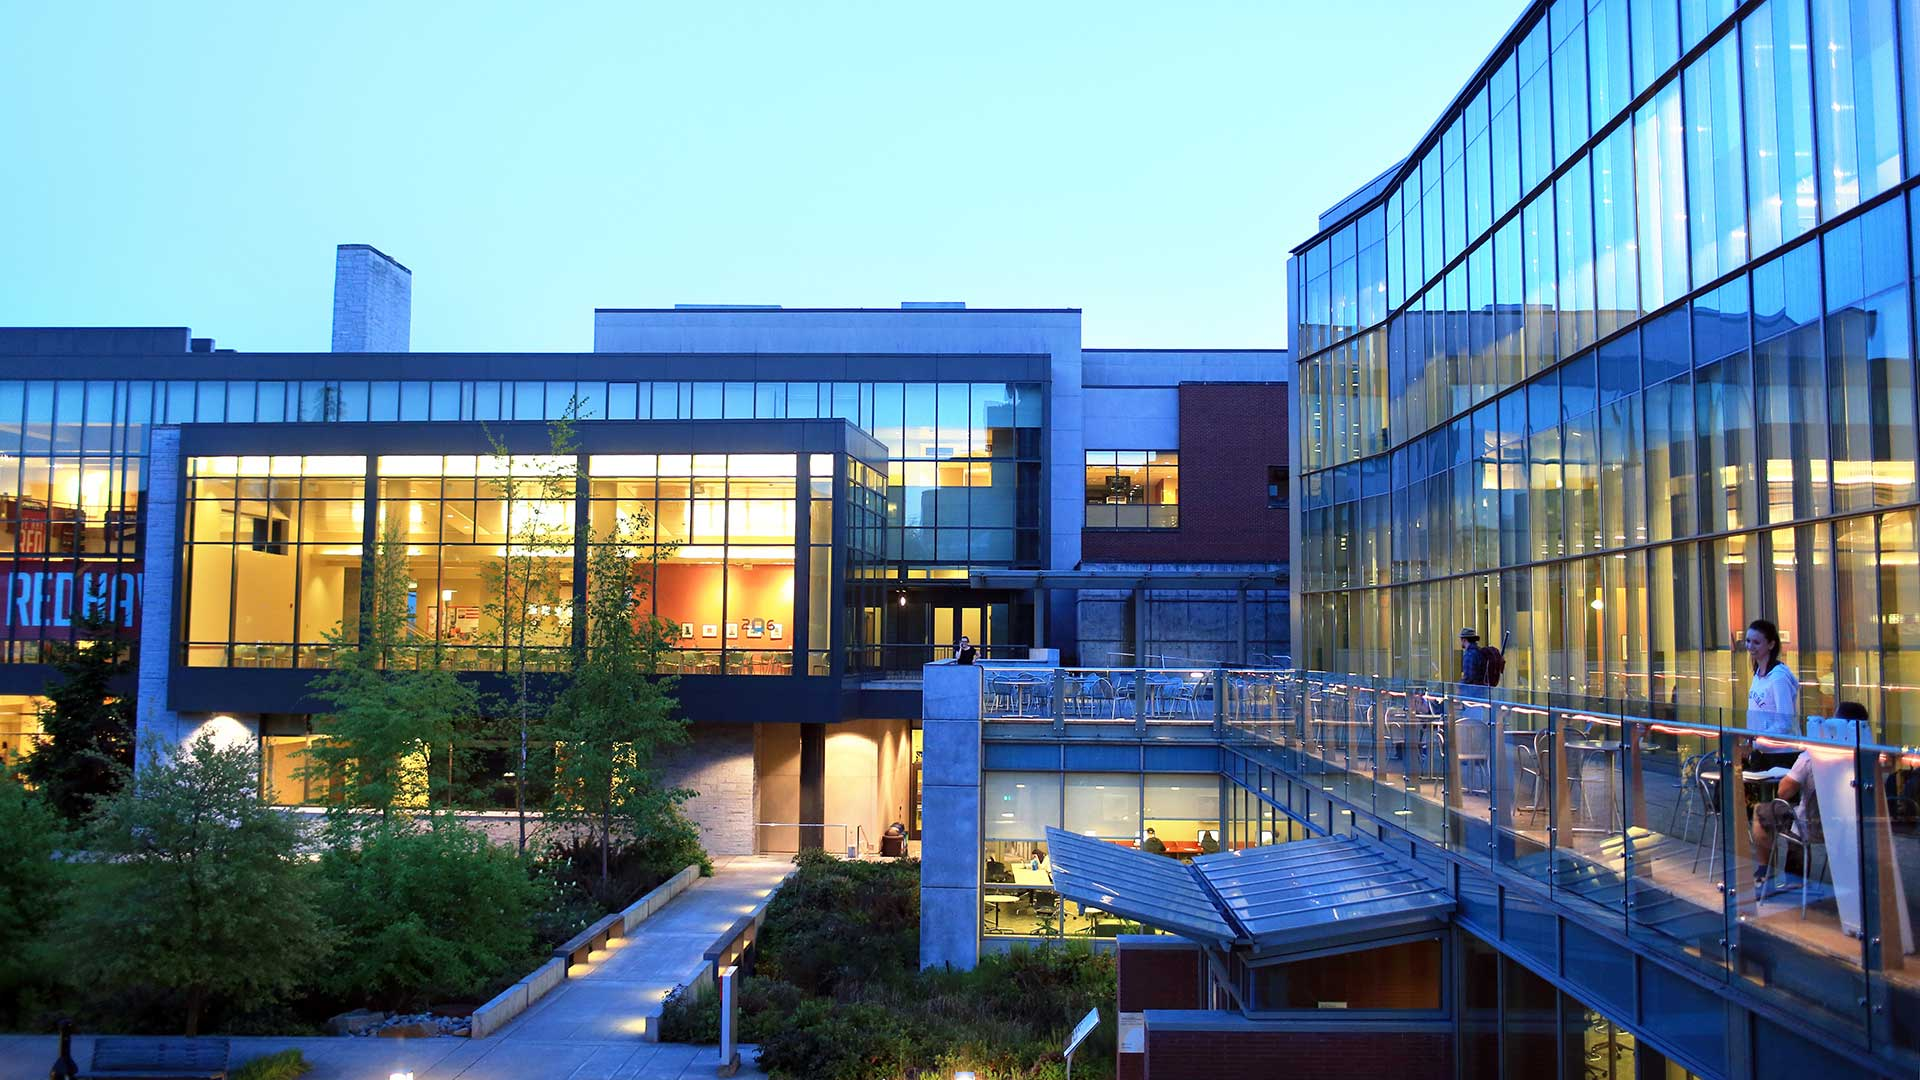 Student Center and Library Exterior at Dusk